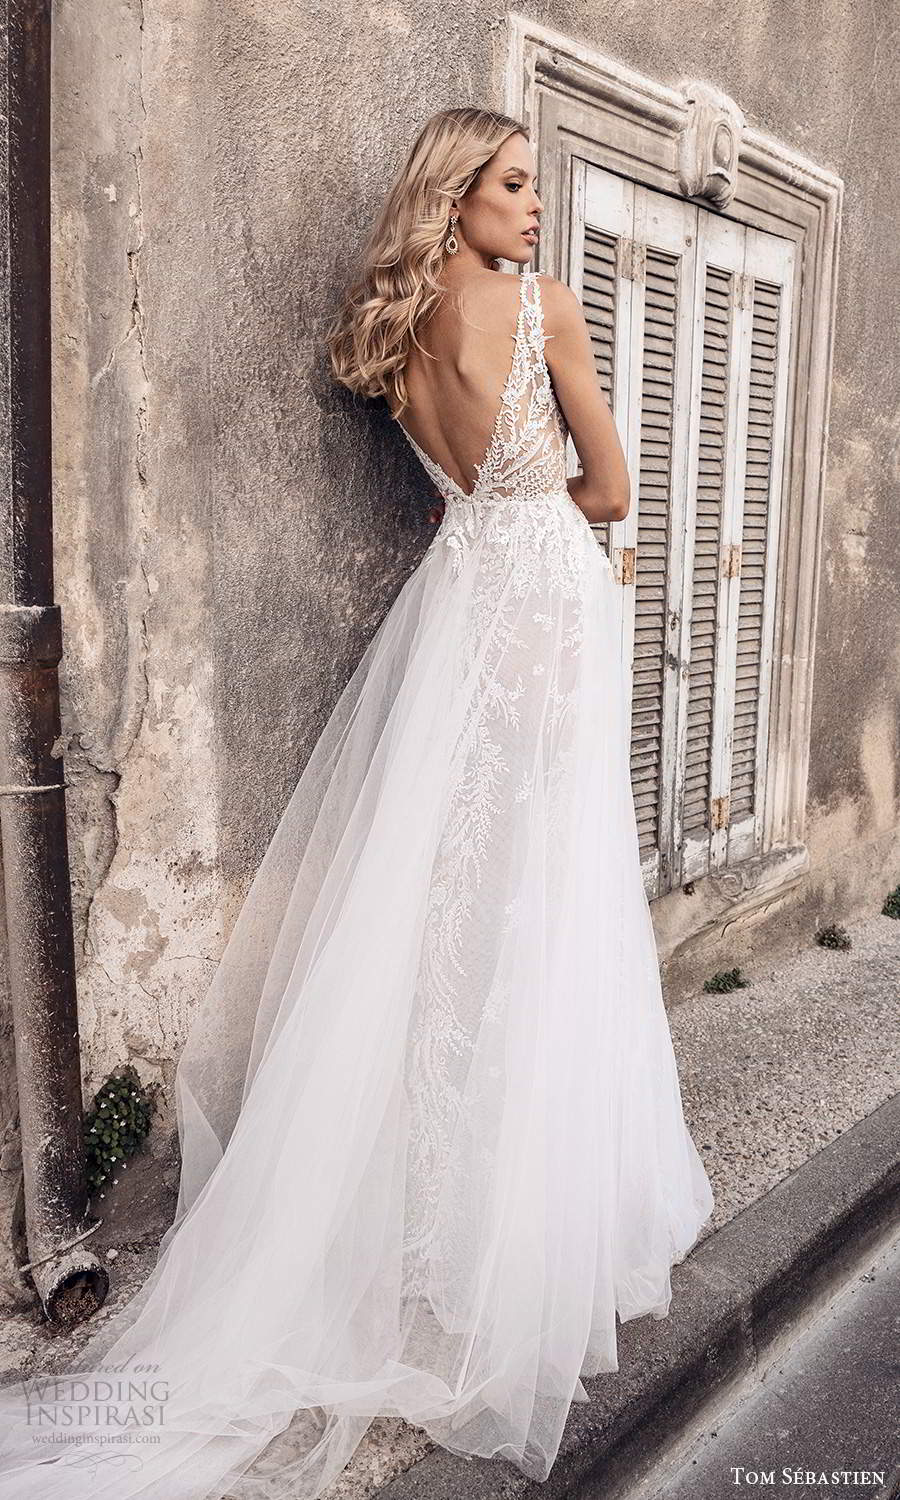 tom sebastien 2021 bridal provence sleeveless straps plunging v neckline fully embellished lace sheath wedding dress sheer a line overskirt chapel train v back (14) mv